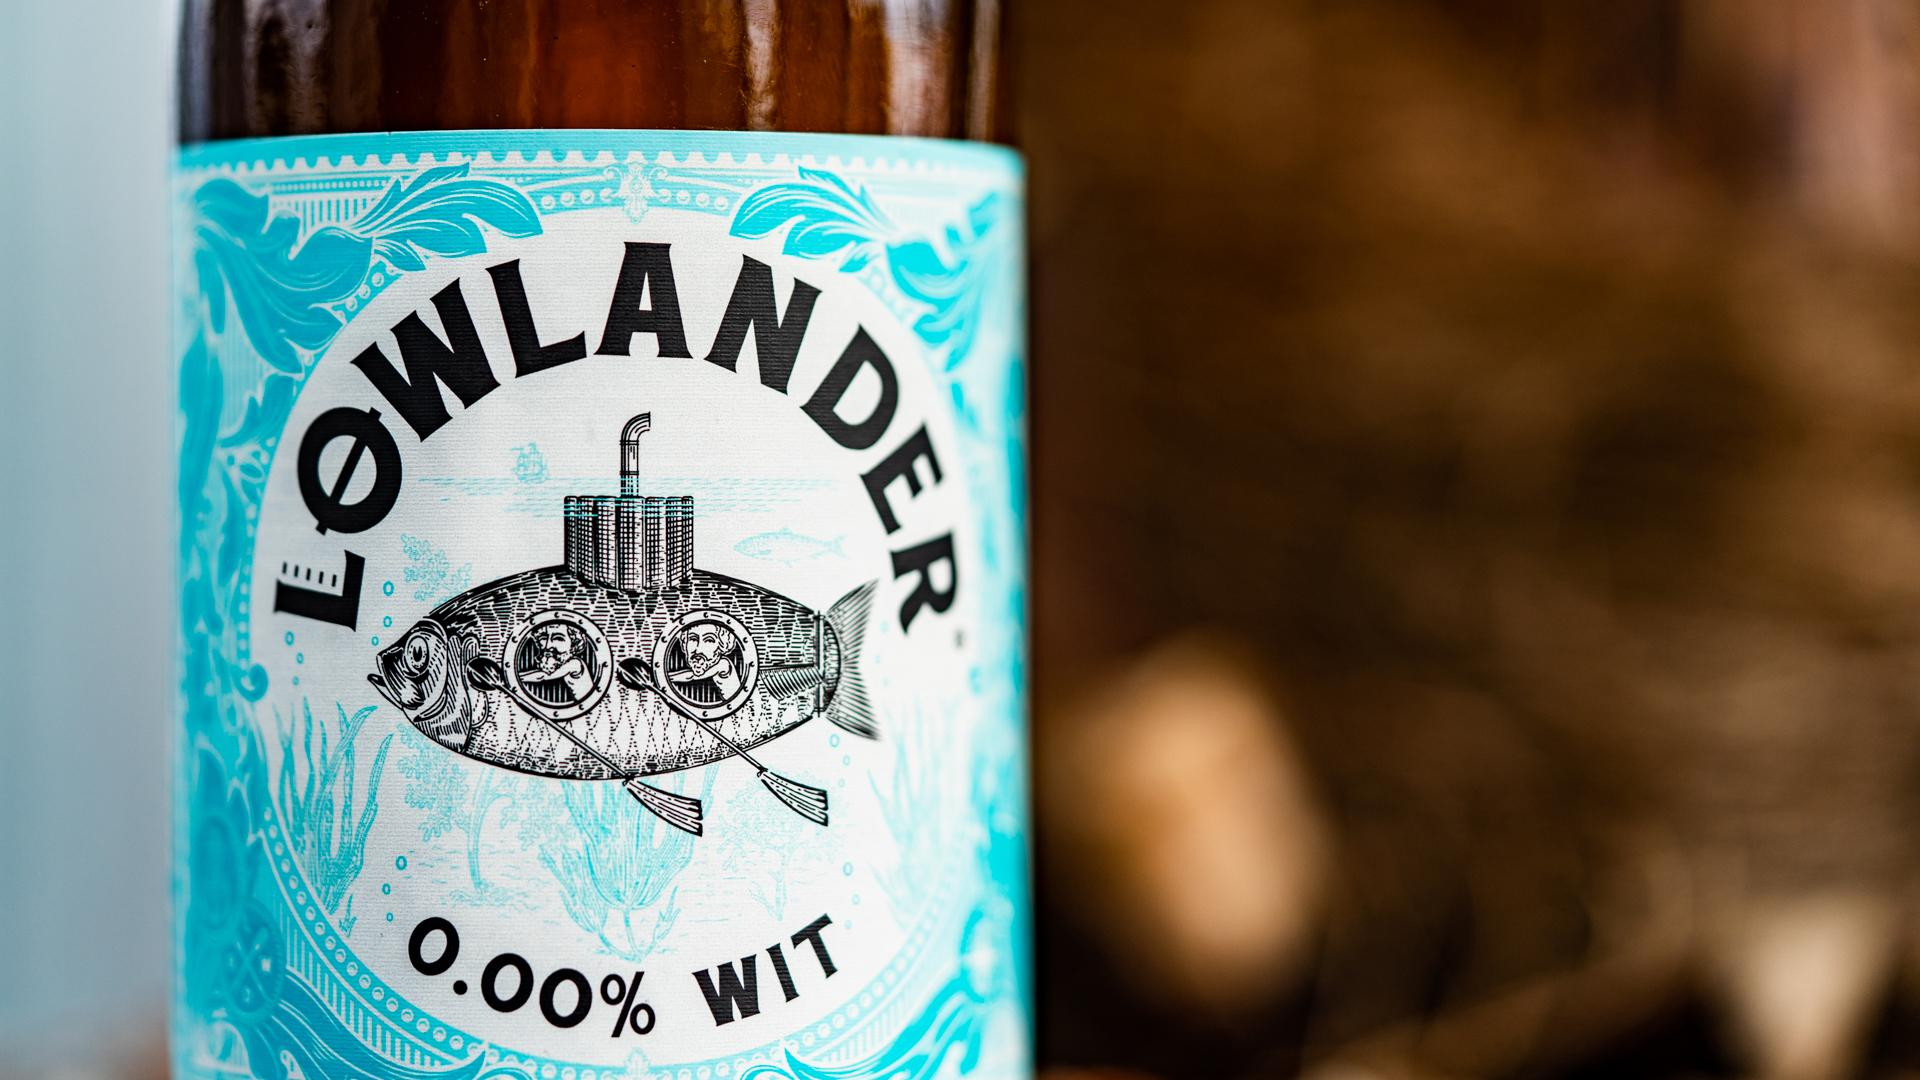 Best Non Alcoholic Beers London – Lowlander's Wit – 0.0% ABV